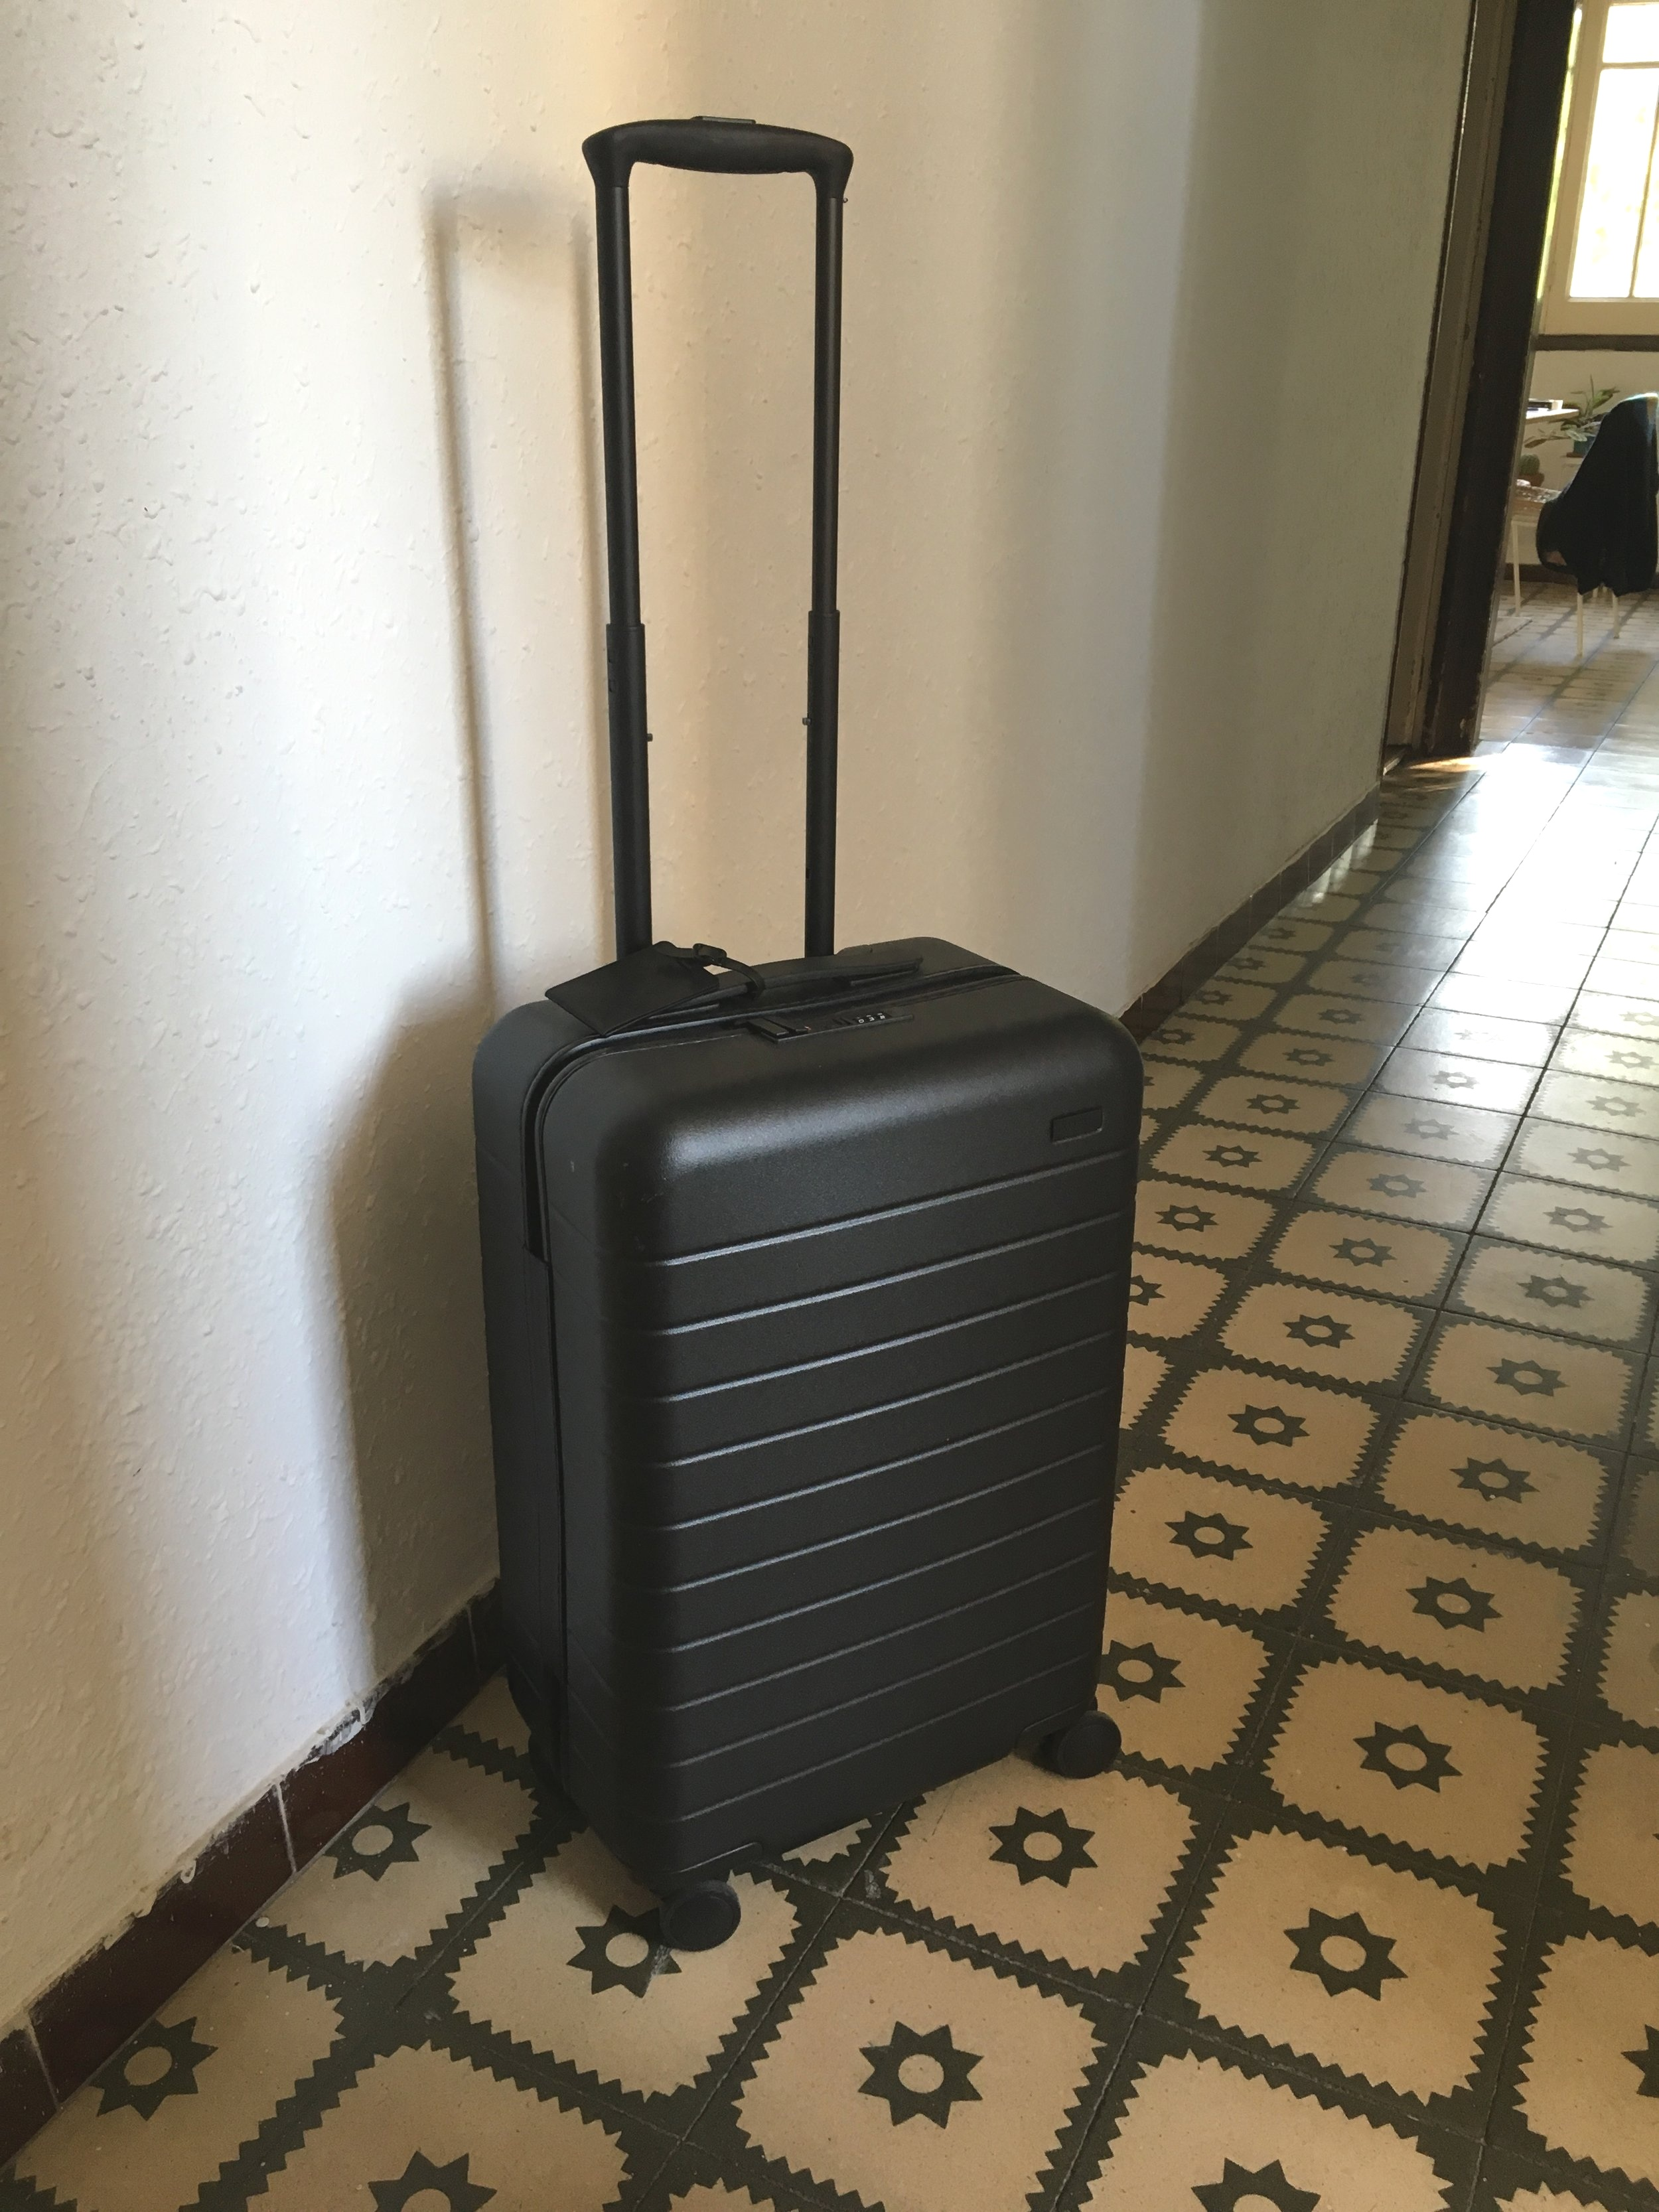 I lived out of this carryon bag for over 2 months!